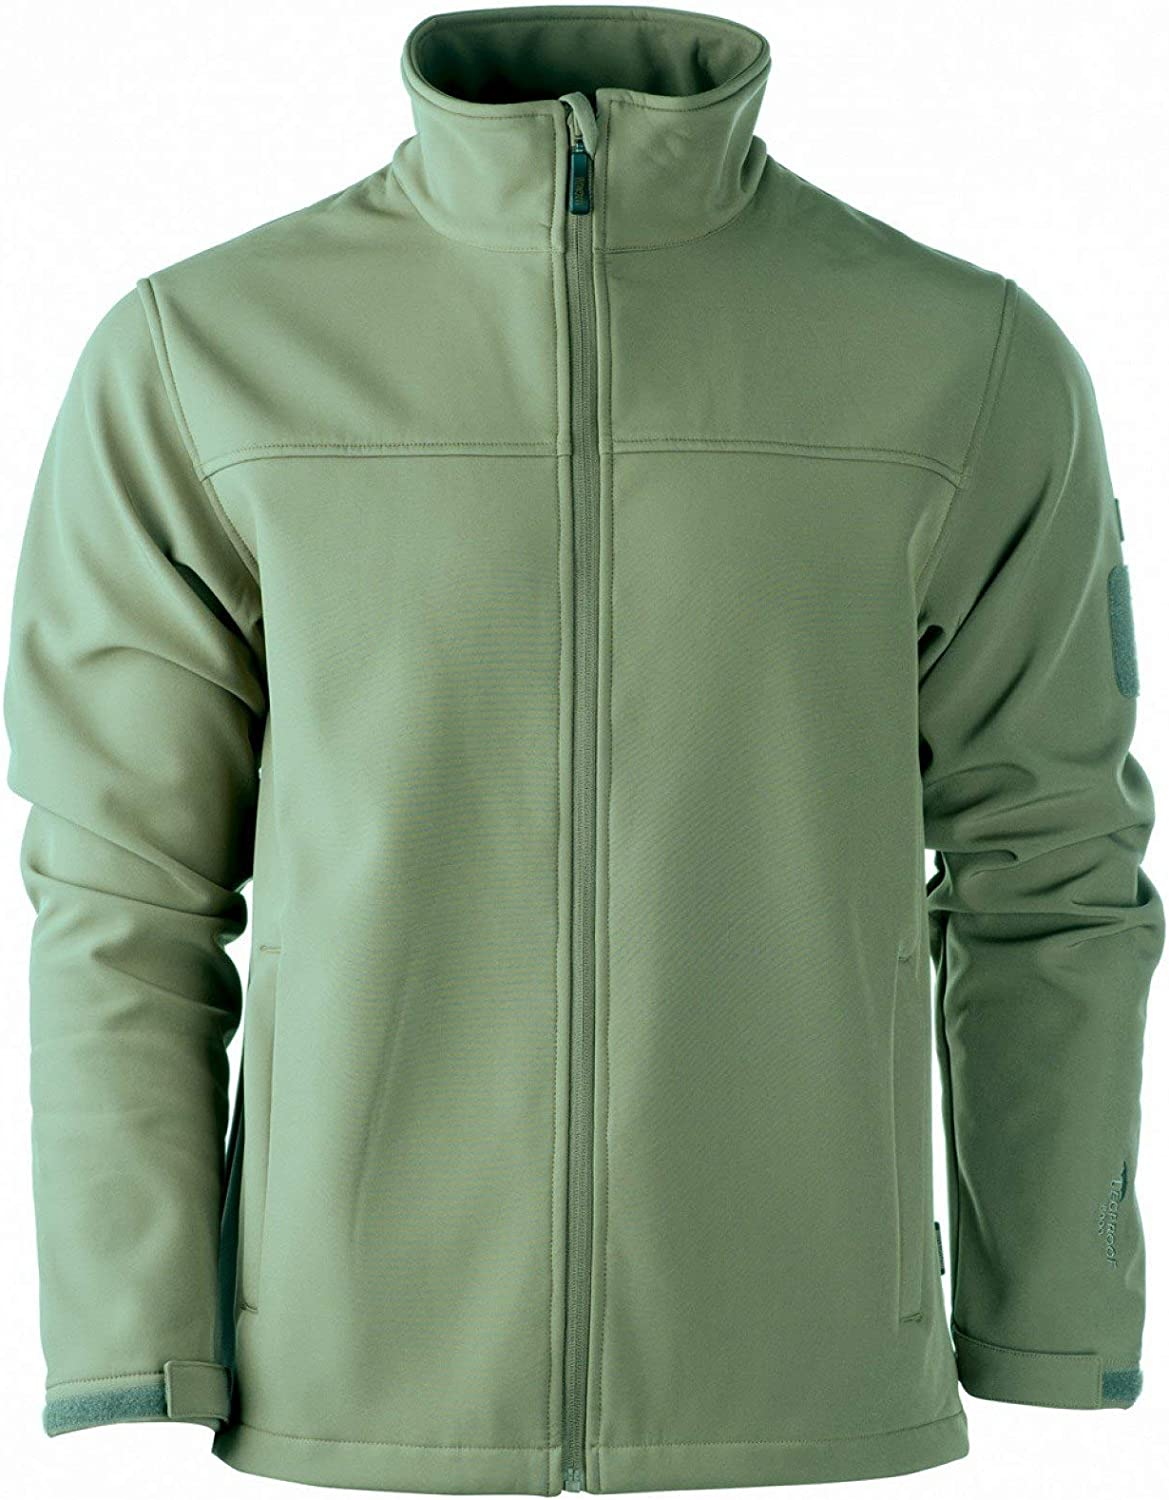 Magnum 5901979018766 Softshell Deer Olive Green S 92800056118